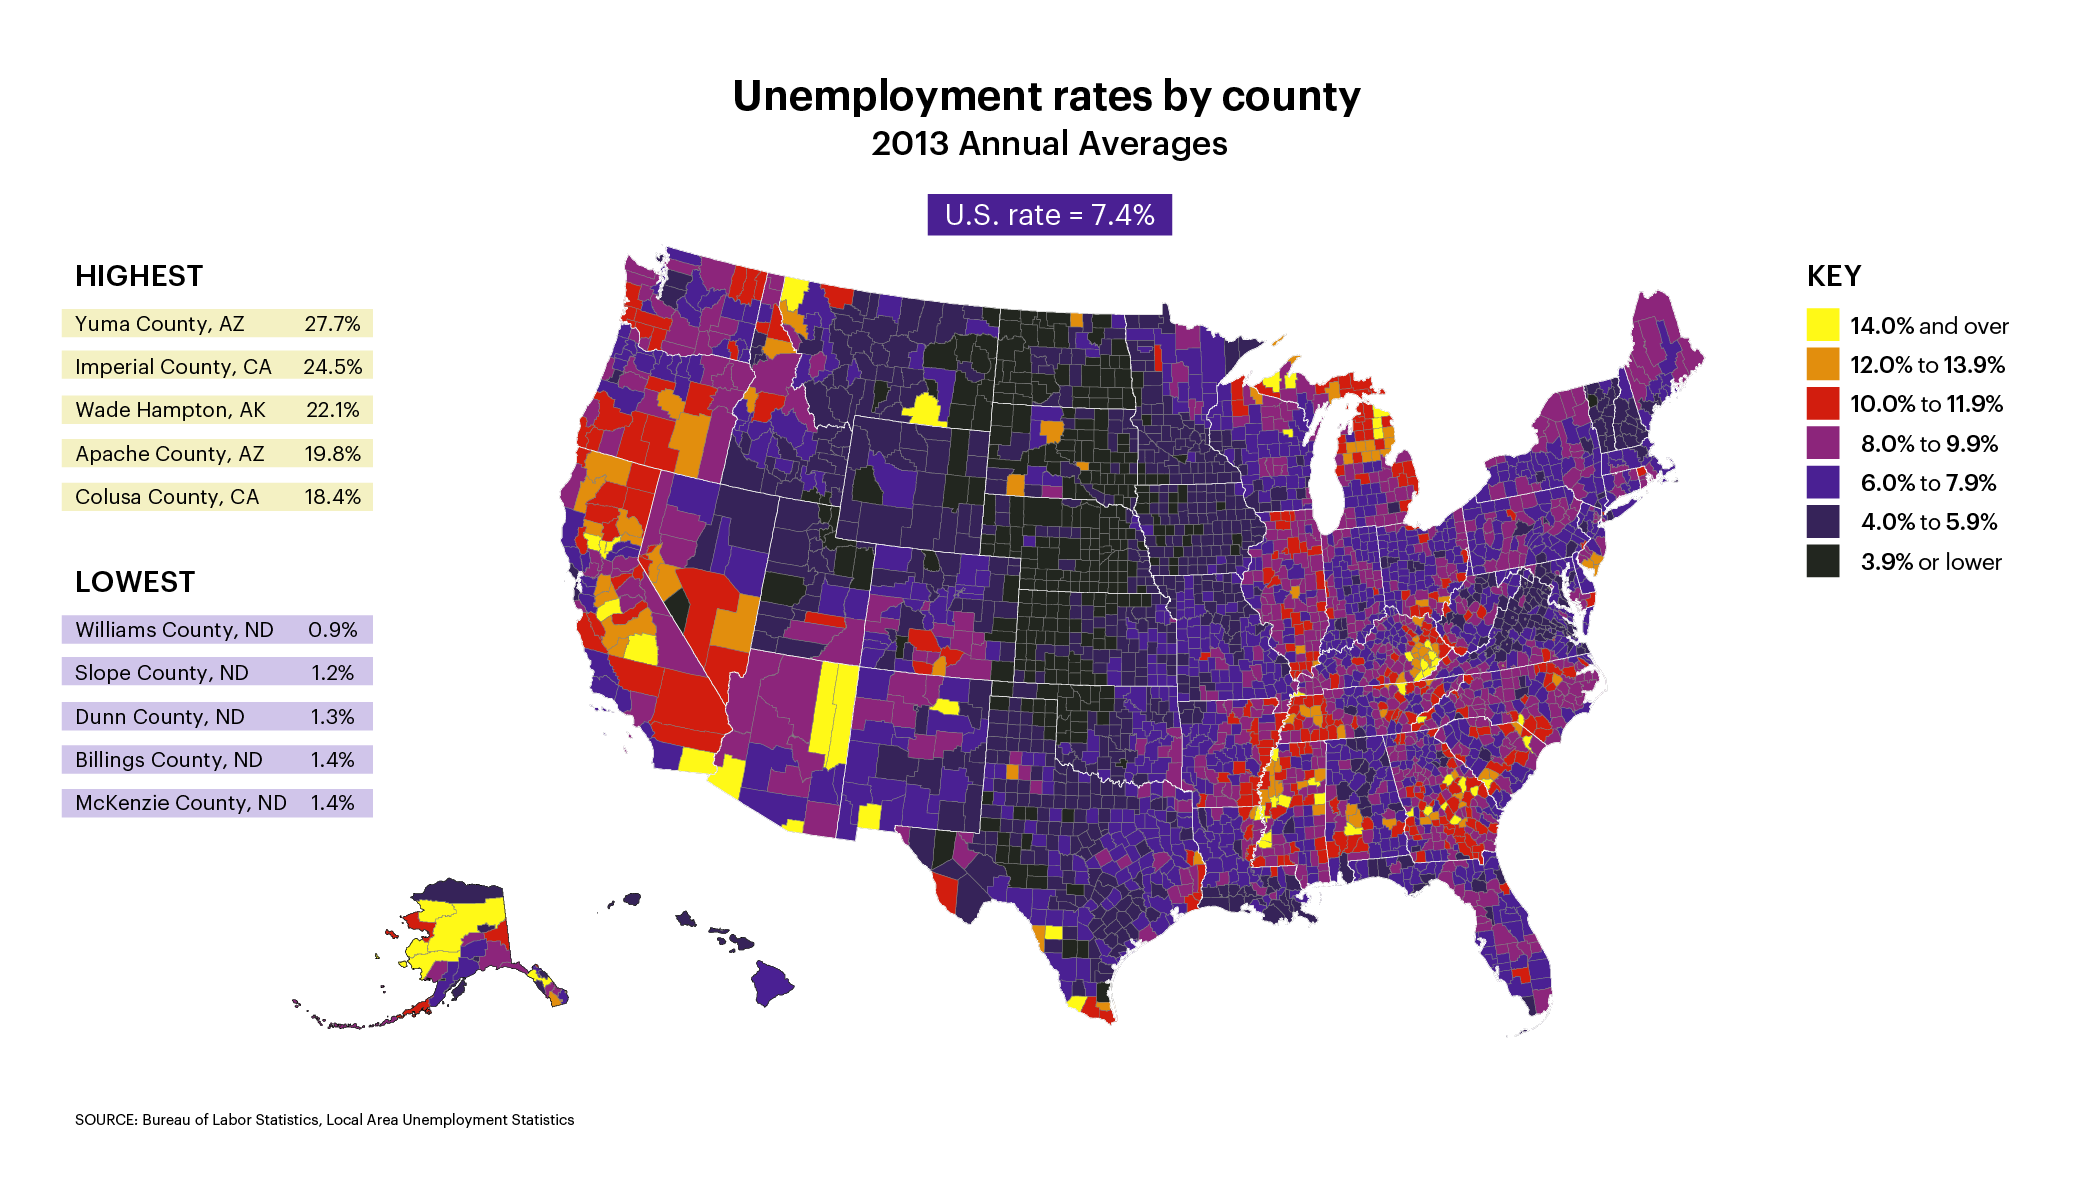 Unemployment Rates By County Map | Expert Market US on total fertility rate map, us unemployment map, domestic violence rate map, suicide rate map, unemployment rates in the u.s, unemployment rates by country, growth rate map, unemployment job search log sheet, foreclosure rate map, u.s. economic map, nj unemployment map, aids rate map, national debt map, europe 1914 world war 1 map, world unemployment map, unemployment texas map, gross national product map, national unemployment map, unemployment rates by county, unemployment mind map,